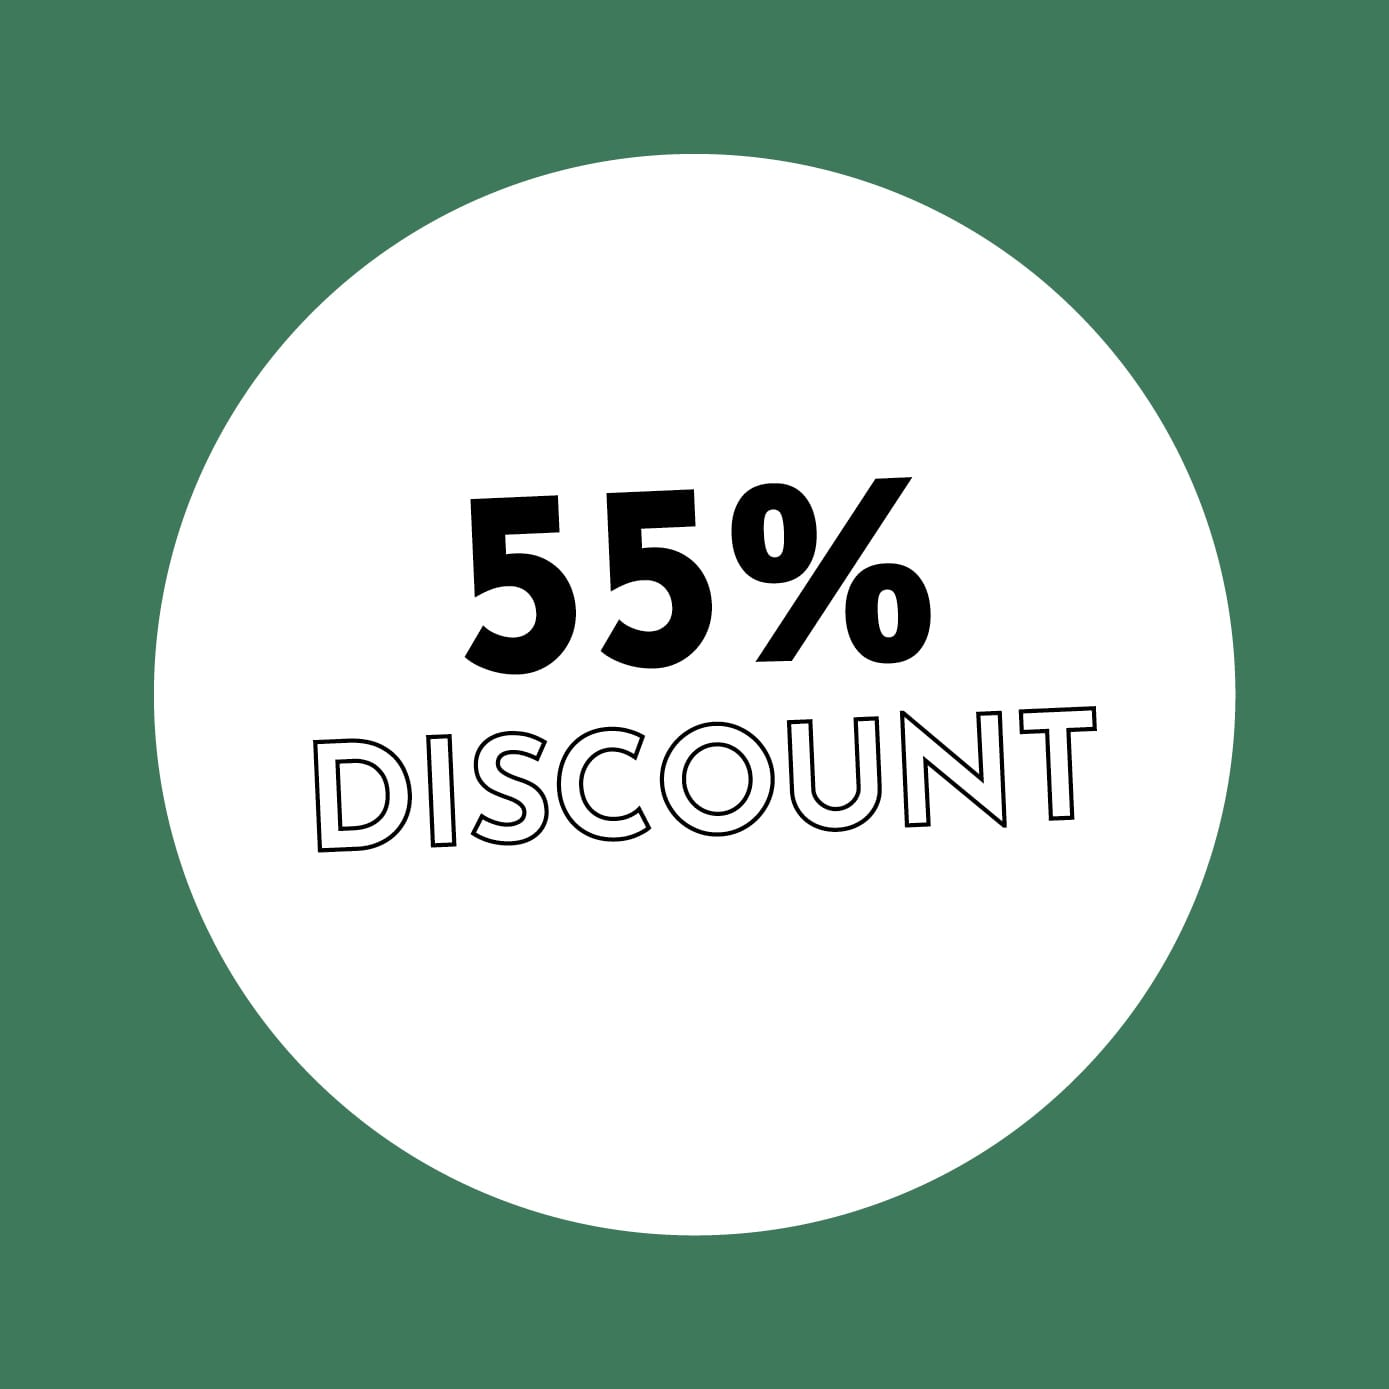 55% Discount